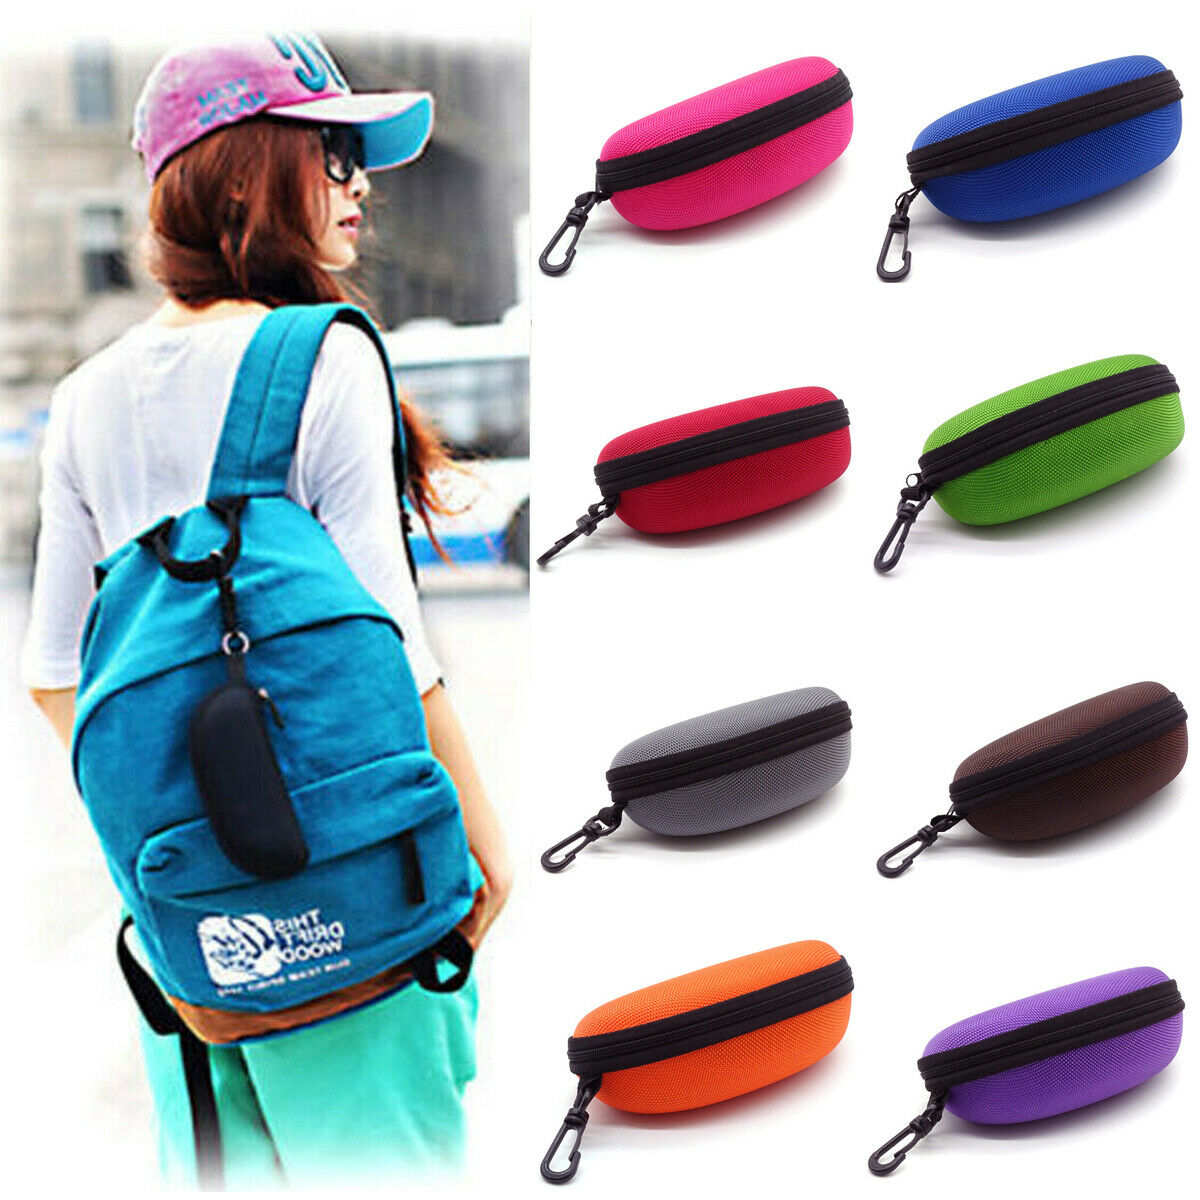 1PC Eye Glasses Sunglasses Hard Zipper Case Cover Bag Storage Box Portable Protector